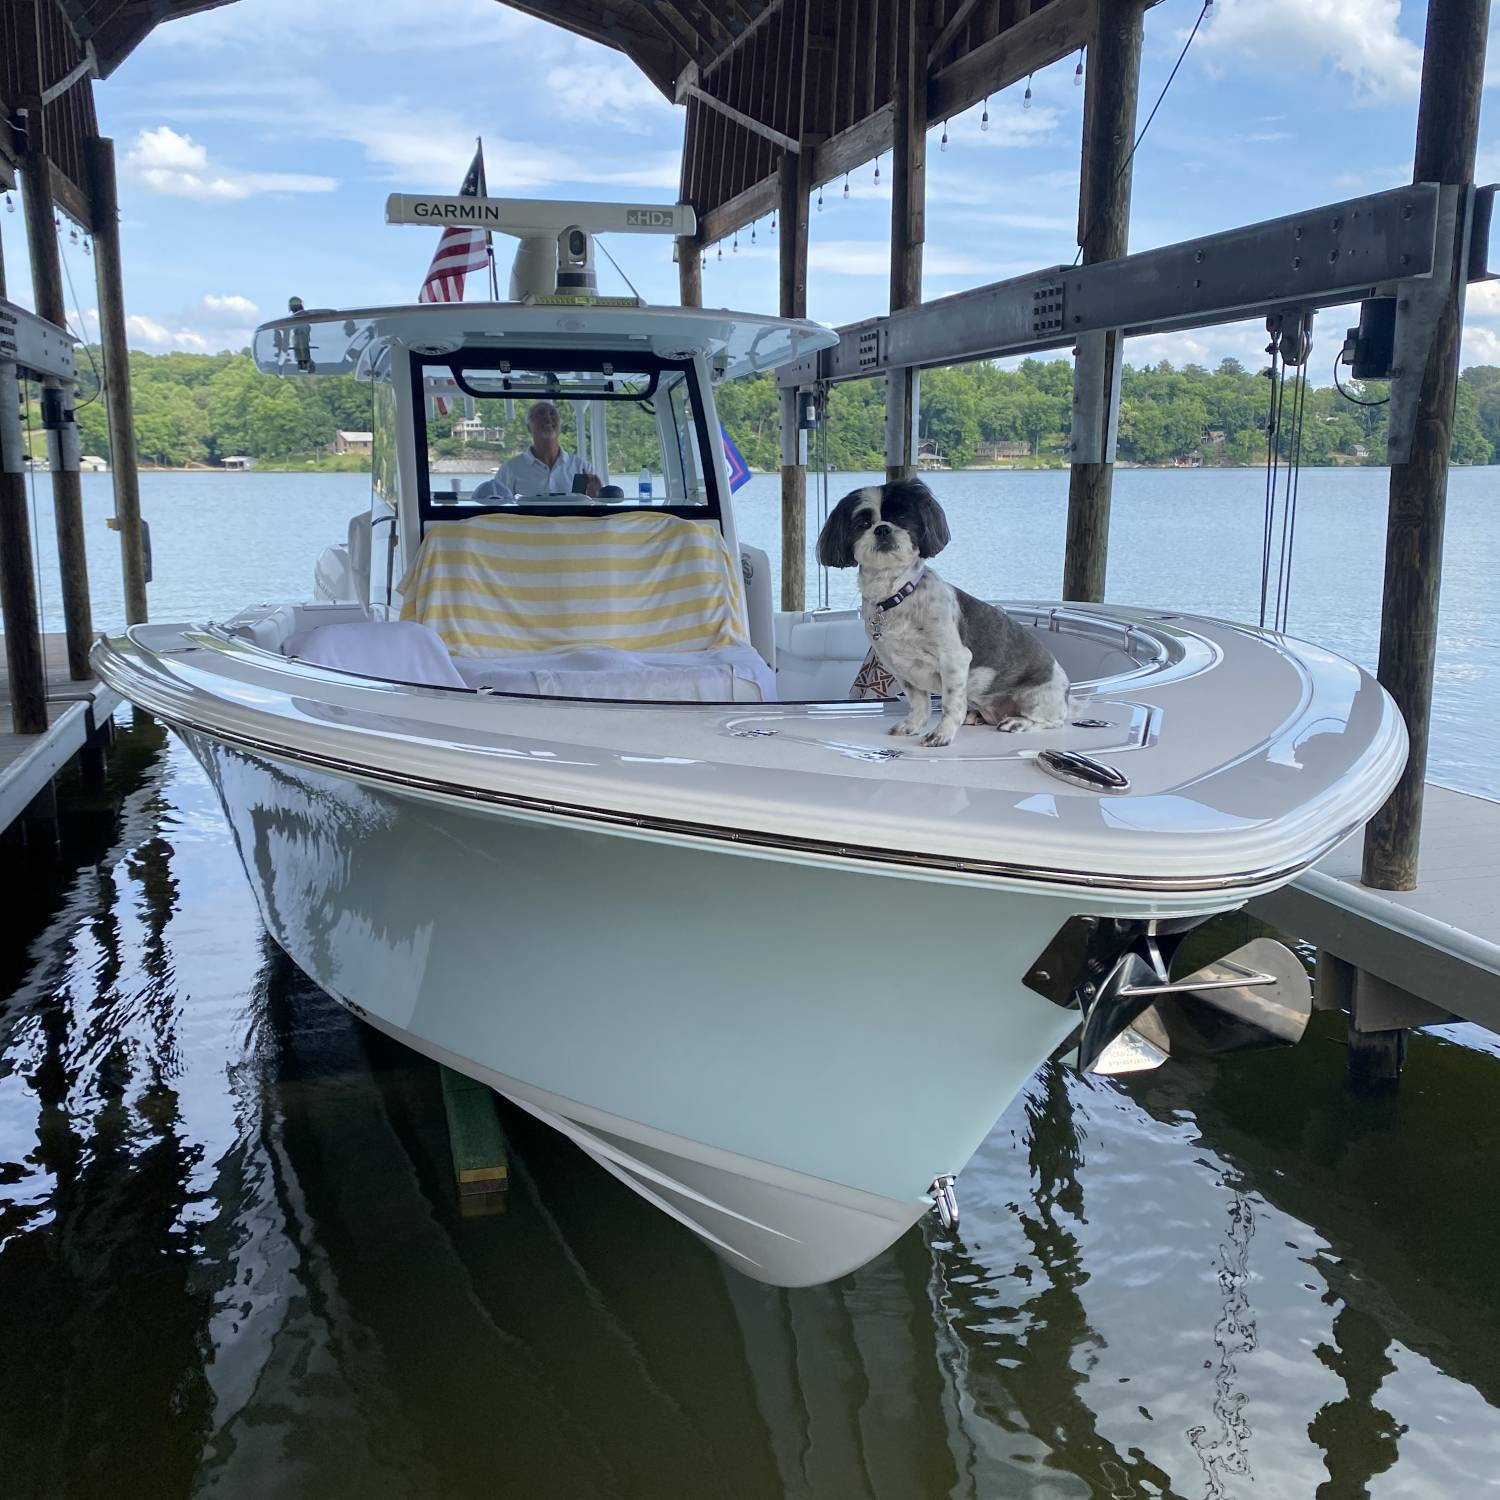 Title: Harley(shitzu) loves boat rides on the 352 - On board their Sportsman Open 352 Center Console - Location: Knoxville TN. Participating in the Photo Contest #SportsmanAugust2021